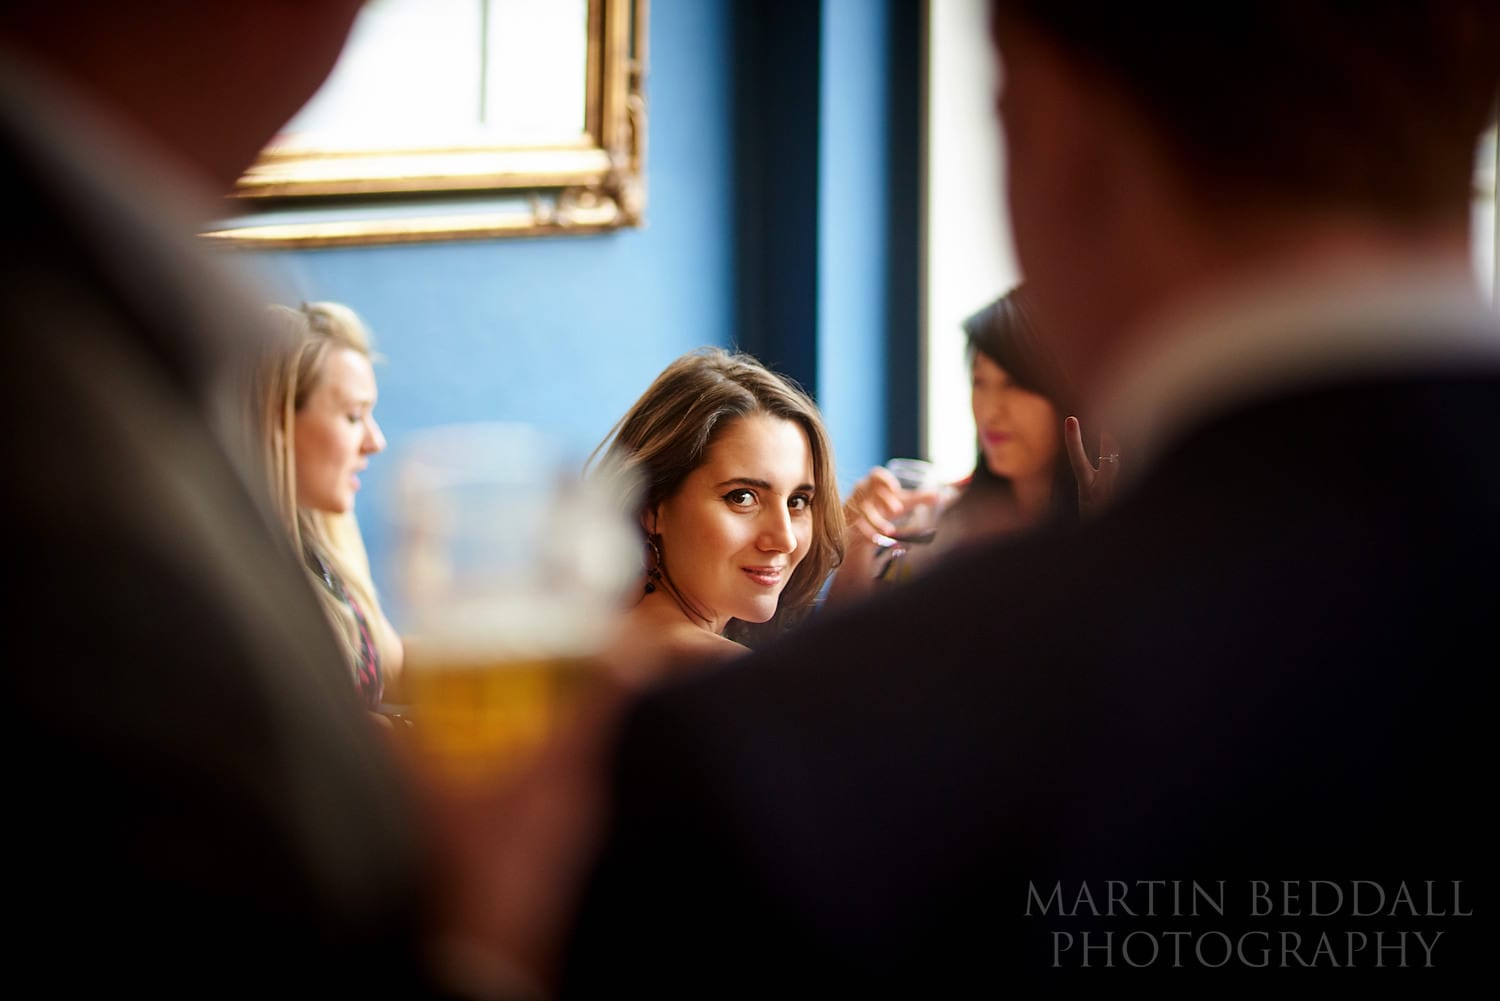 Wedding reception at The Green pub in Clerkenwell